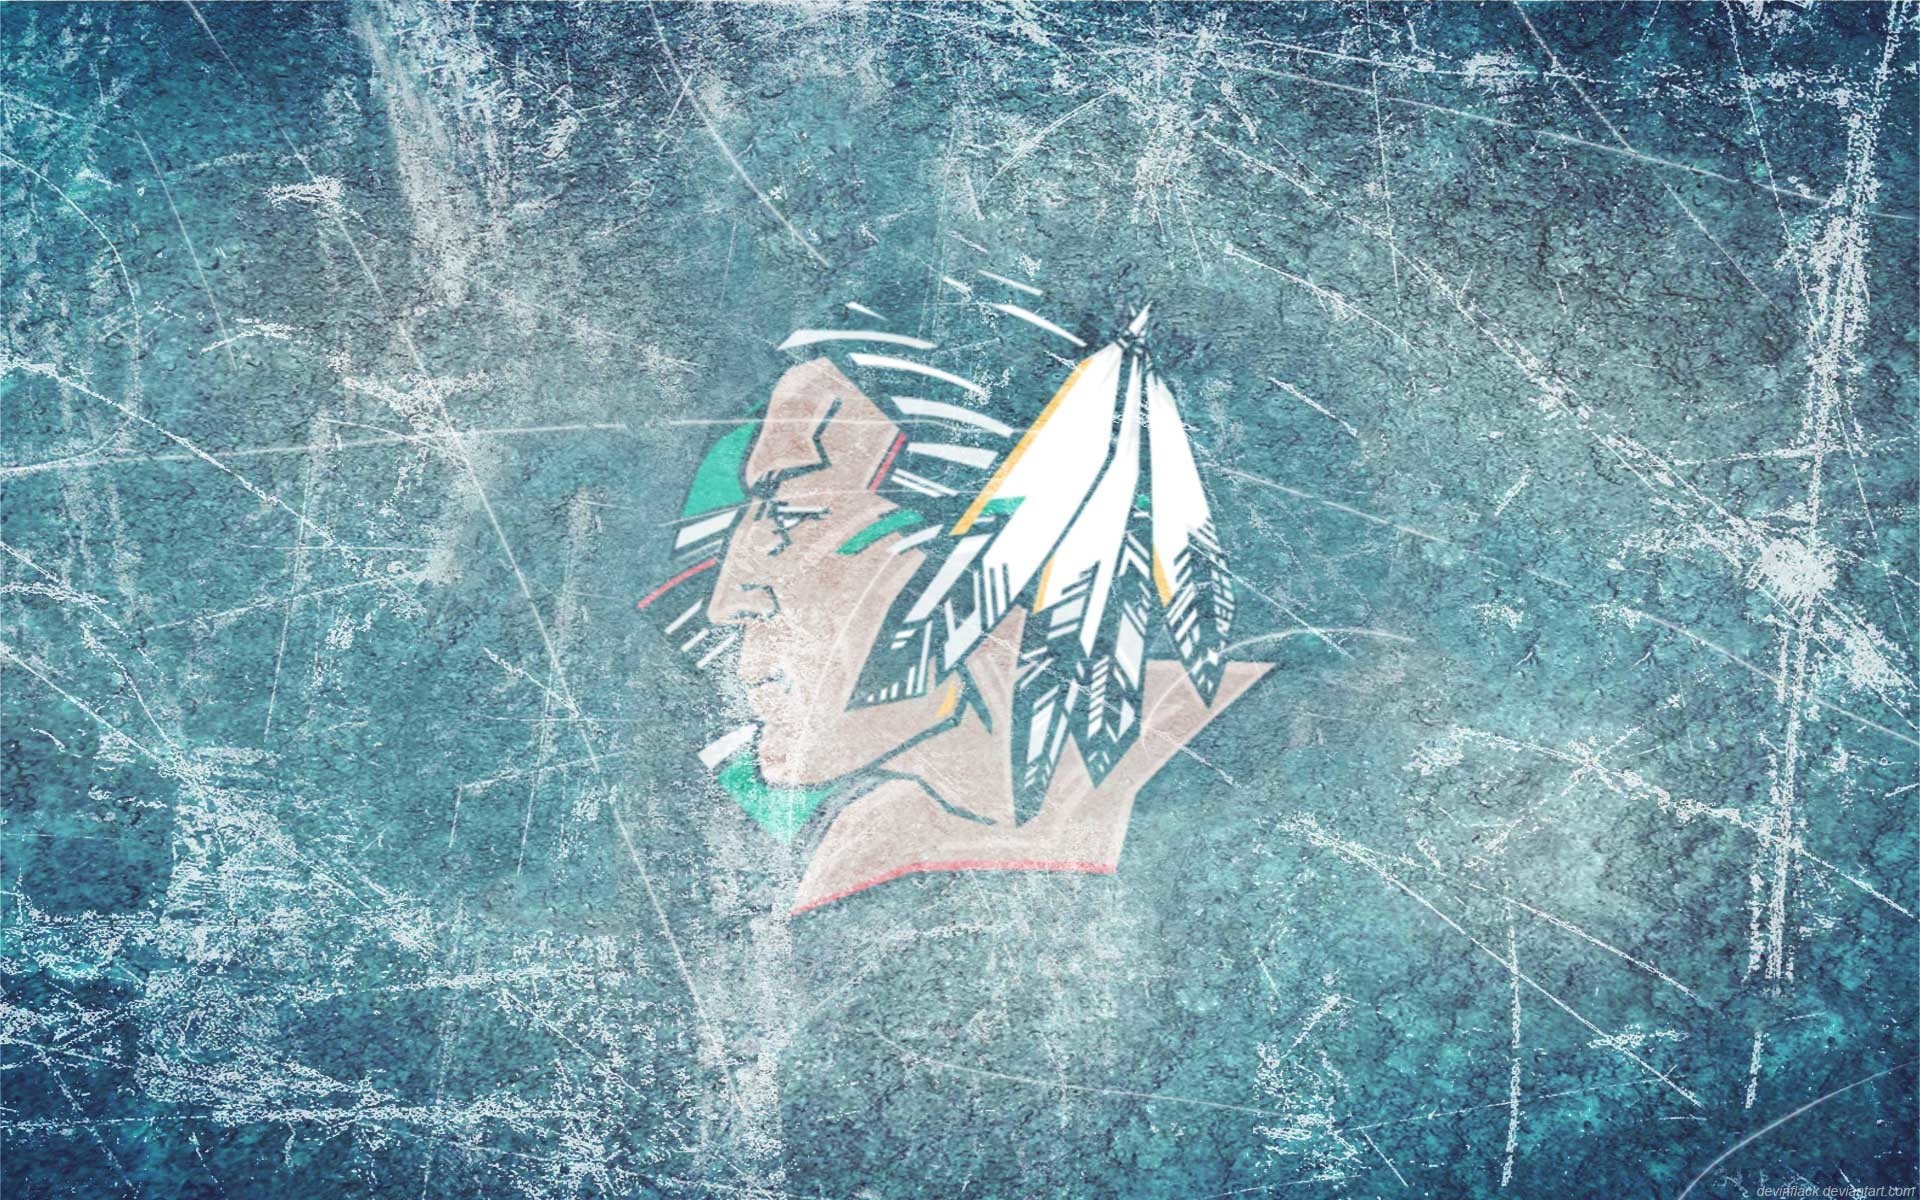 1920x1200 Free Wallpapers - Fighting Sioux Black Ice wallpaper